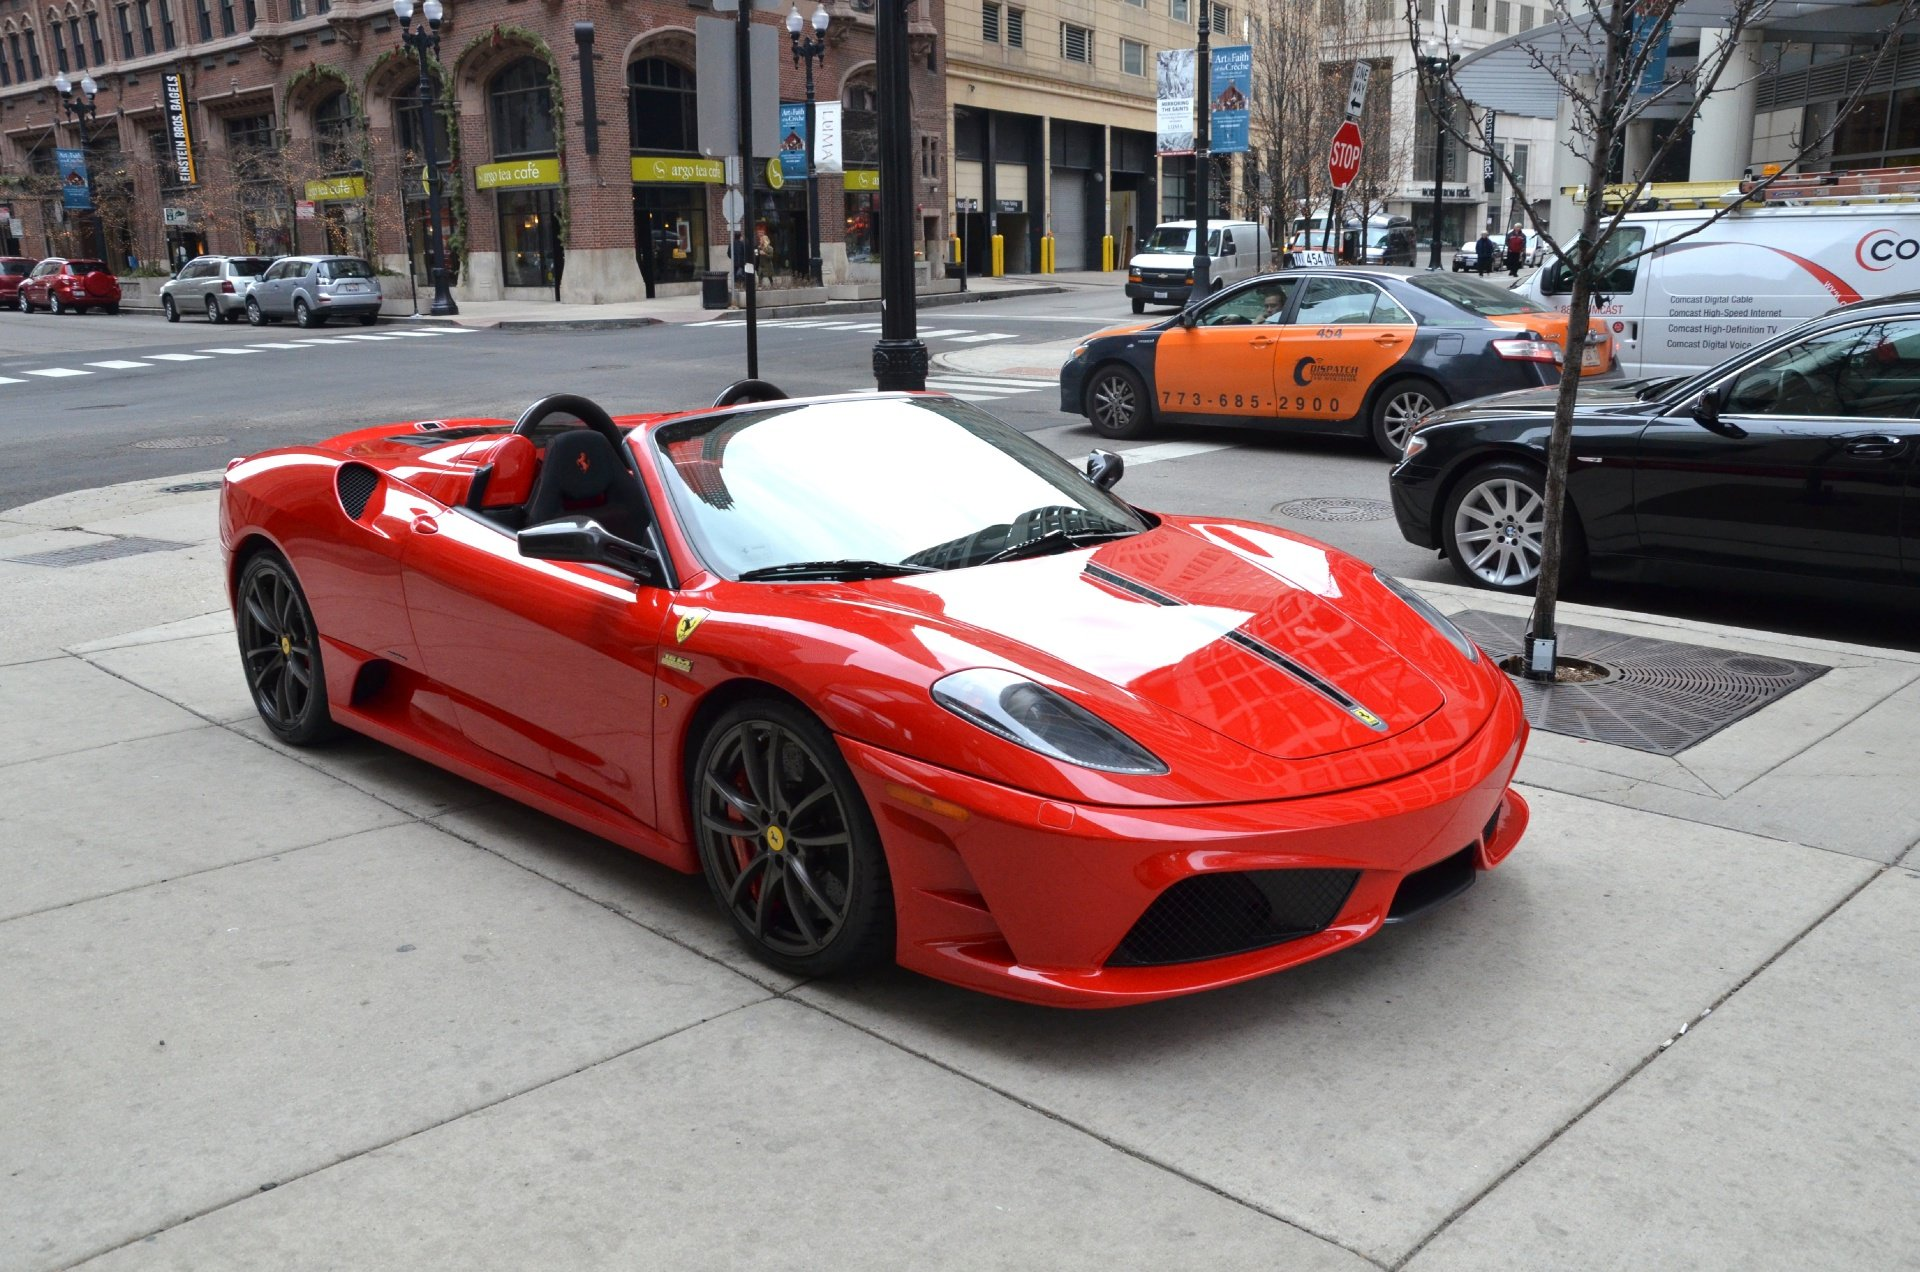 Small Size Car Wallpapers Ferrari F430 Scuderia Spider Cabriolet Roadster Dreamcar